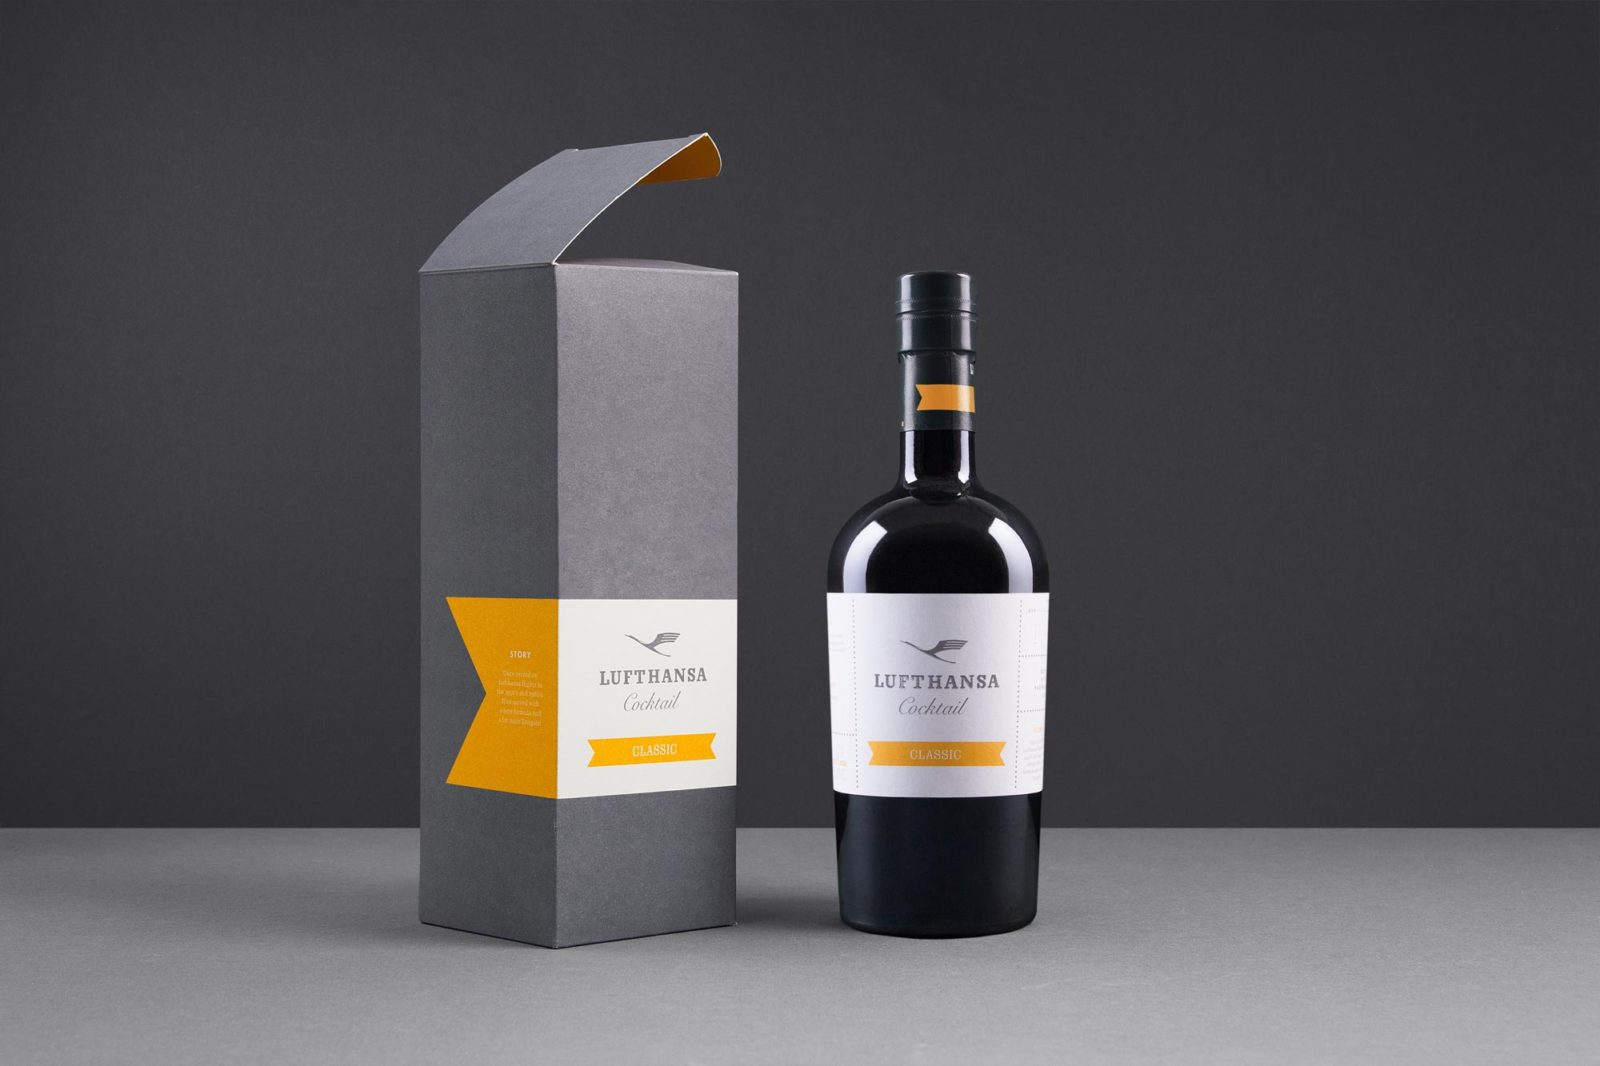 Editienne Grafikdesign - Kommunikationsdesign Berlin- Brand Packaging Design- Spreewood Distillers- Lufthansa Cocktail 22